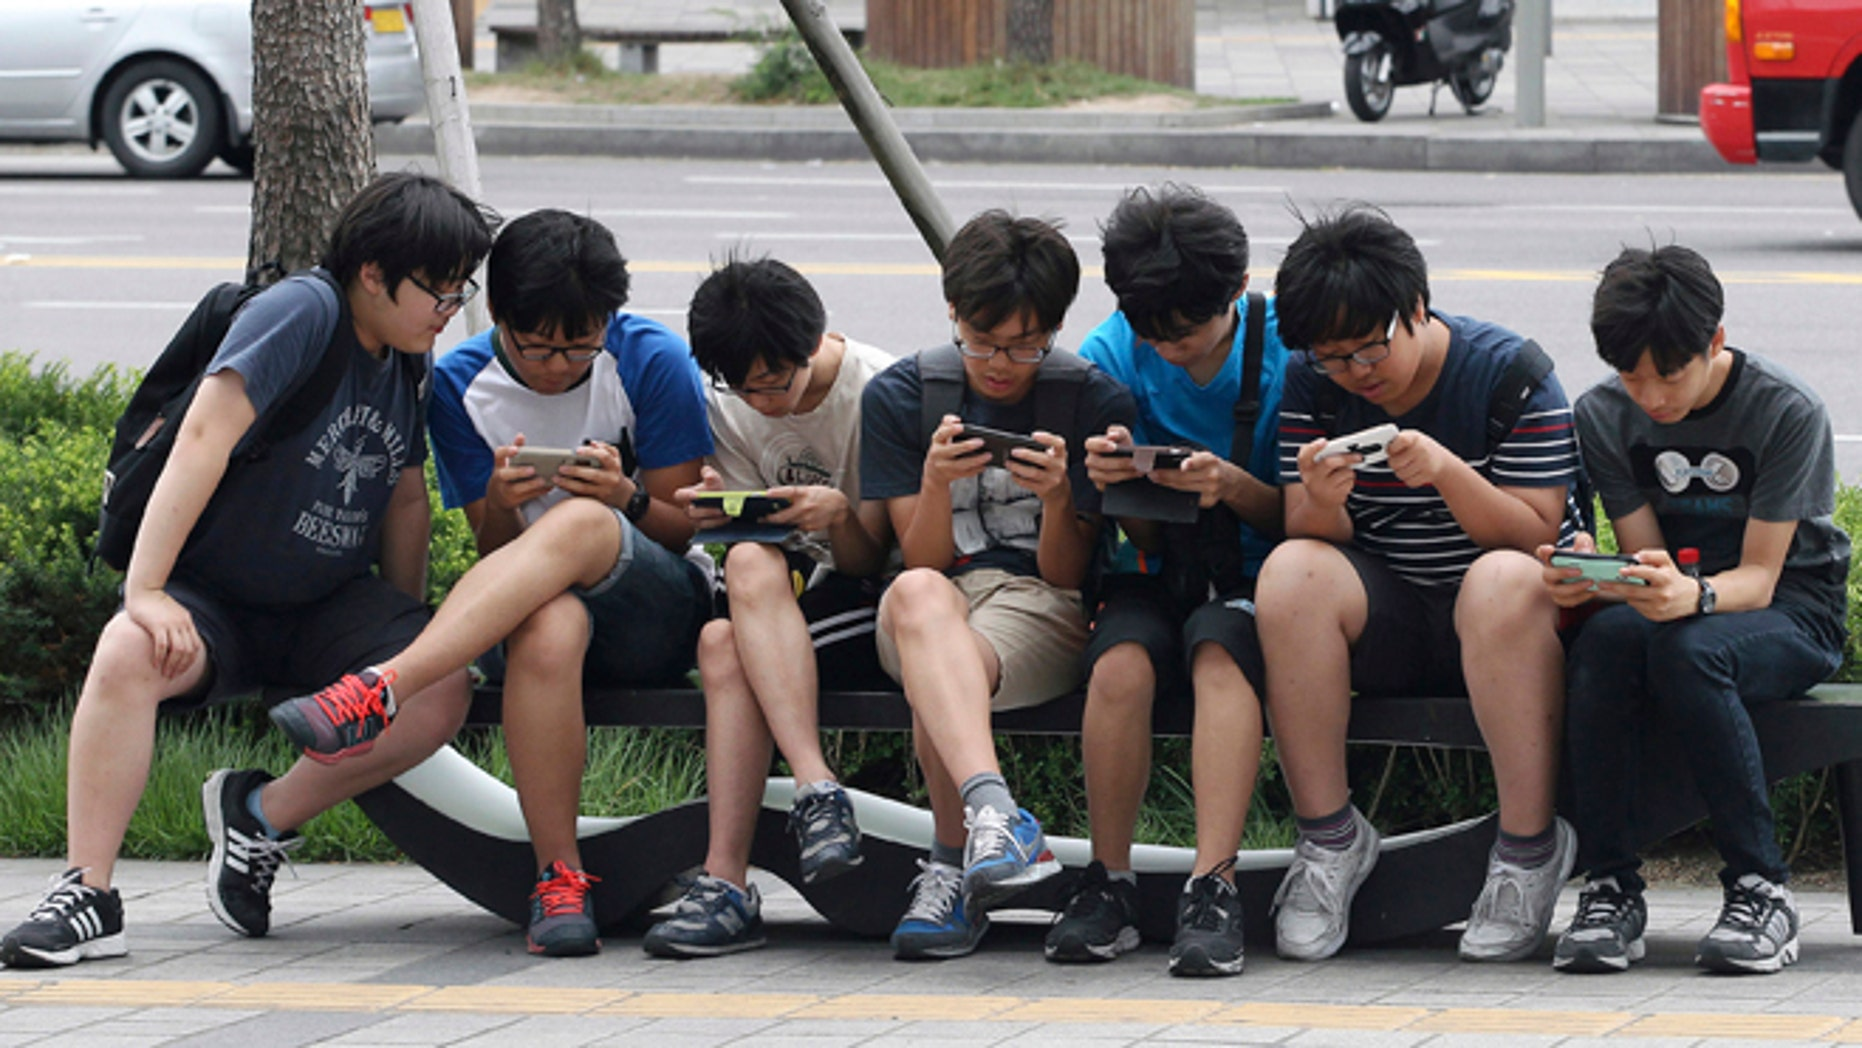 July 16, 2015: South Korean high school students play games on their smartphones on a bench on the sidewalk in Seoul, South Korea. The most widely used child surveillance app in South Korea is being quietly pulled from the market after security specialists raised serious concerns about the program's safety.